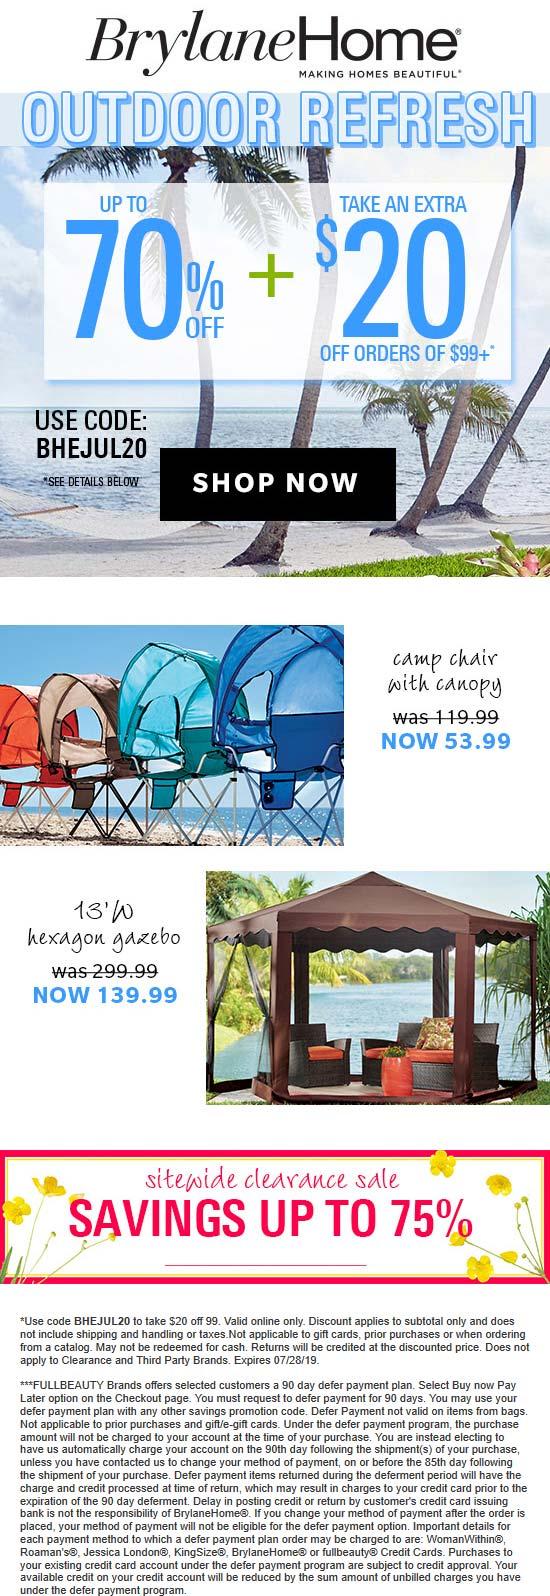 Brylane Home Coupon August 2019 Extra $20 off $99 at Brylane Home catalog via promo code BHEJUL20